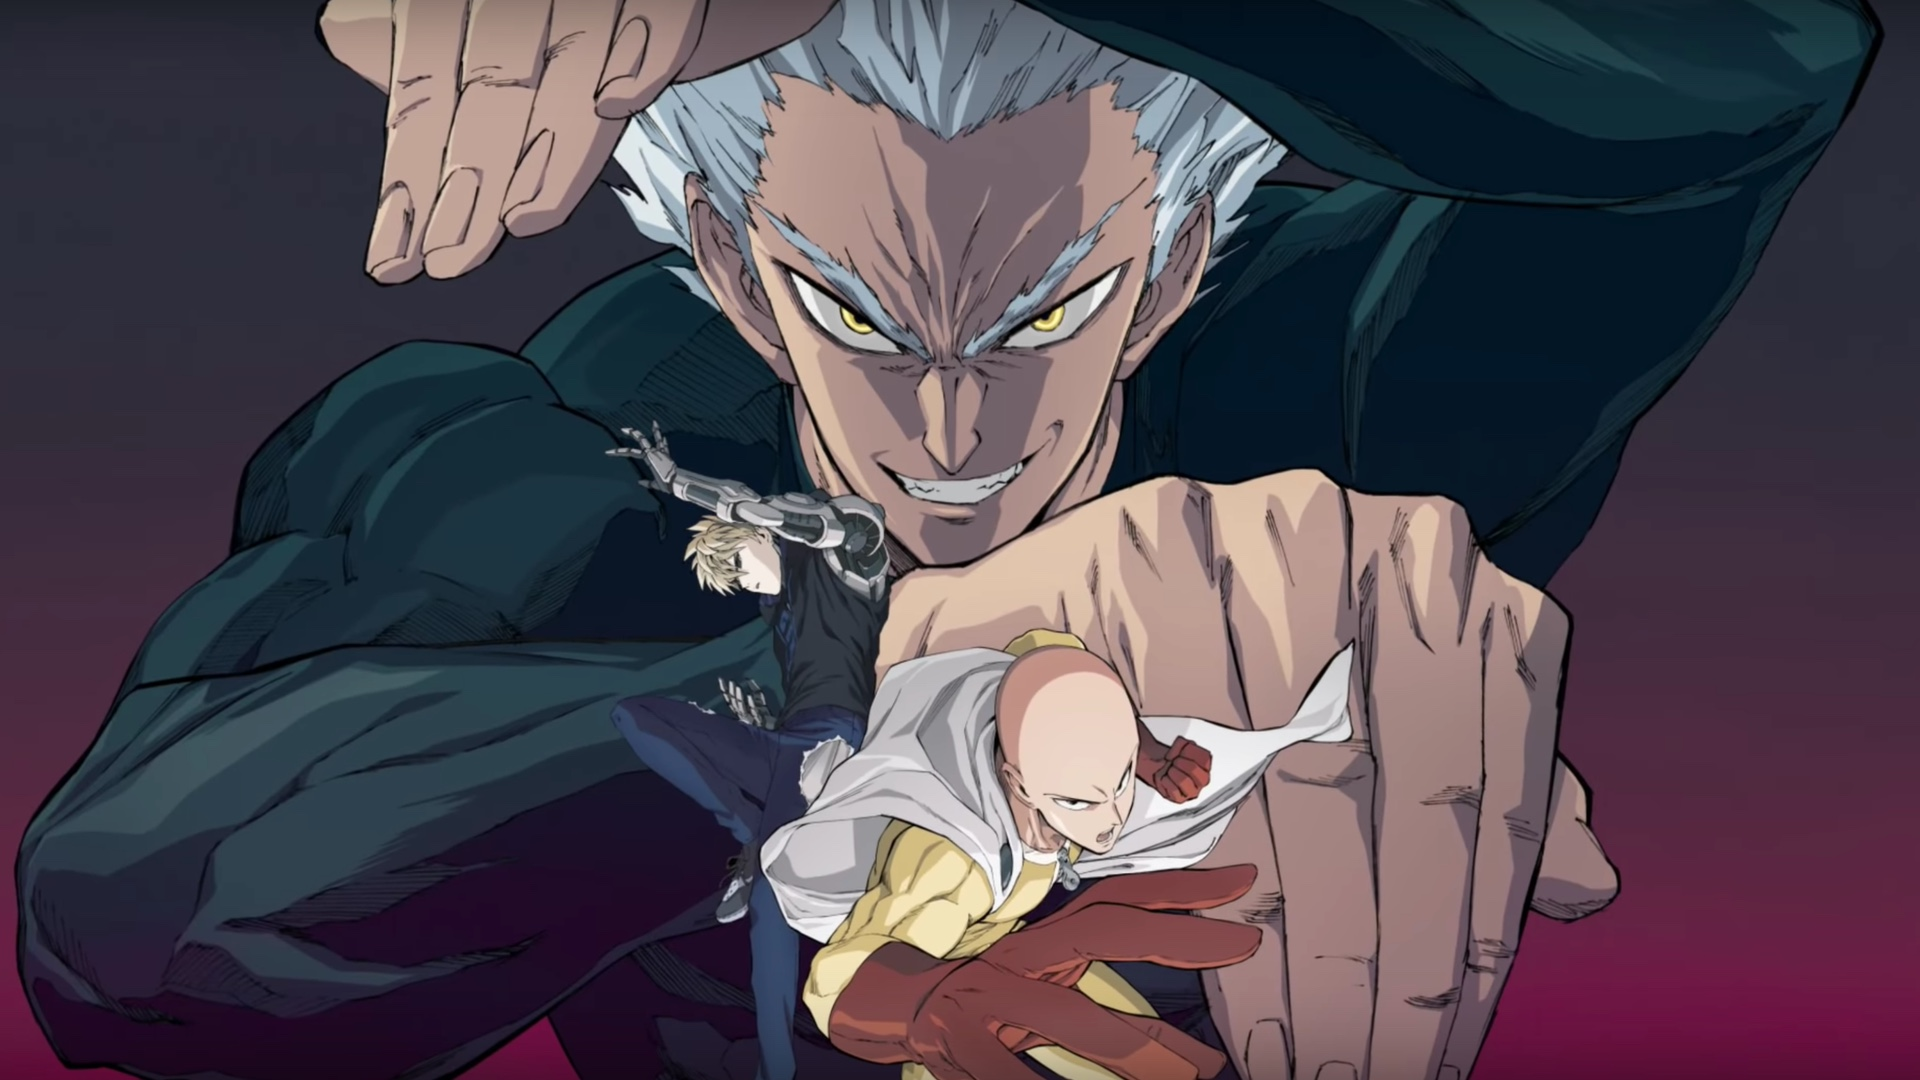 rock-out-to-the-one-punch-man-season-2-announcement-trailer-social.jpg